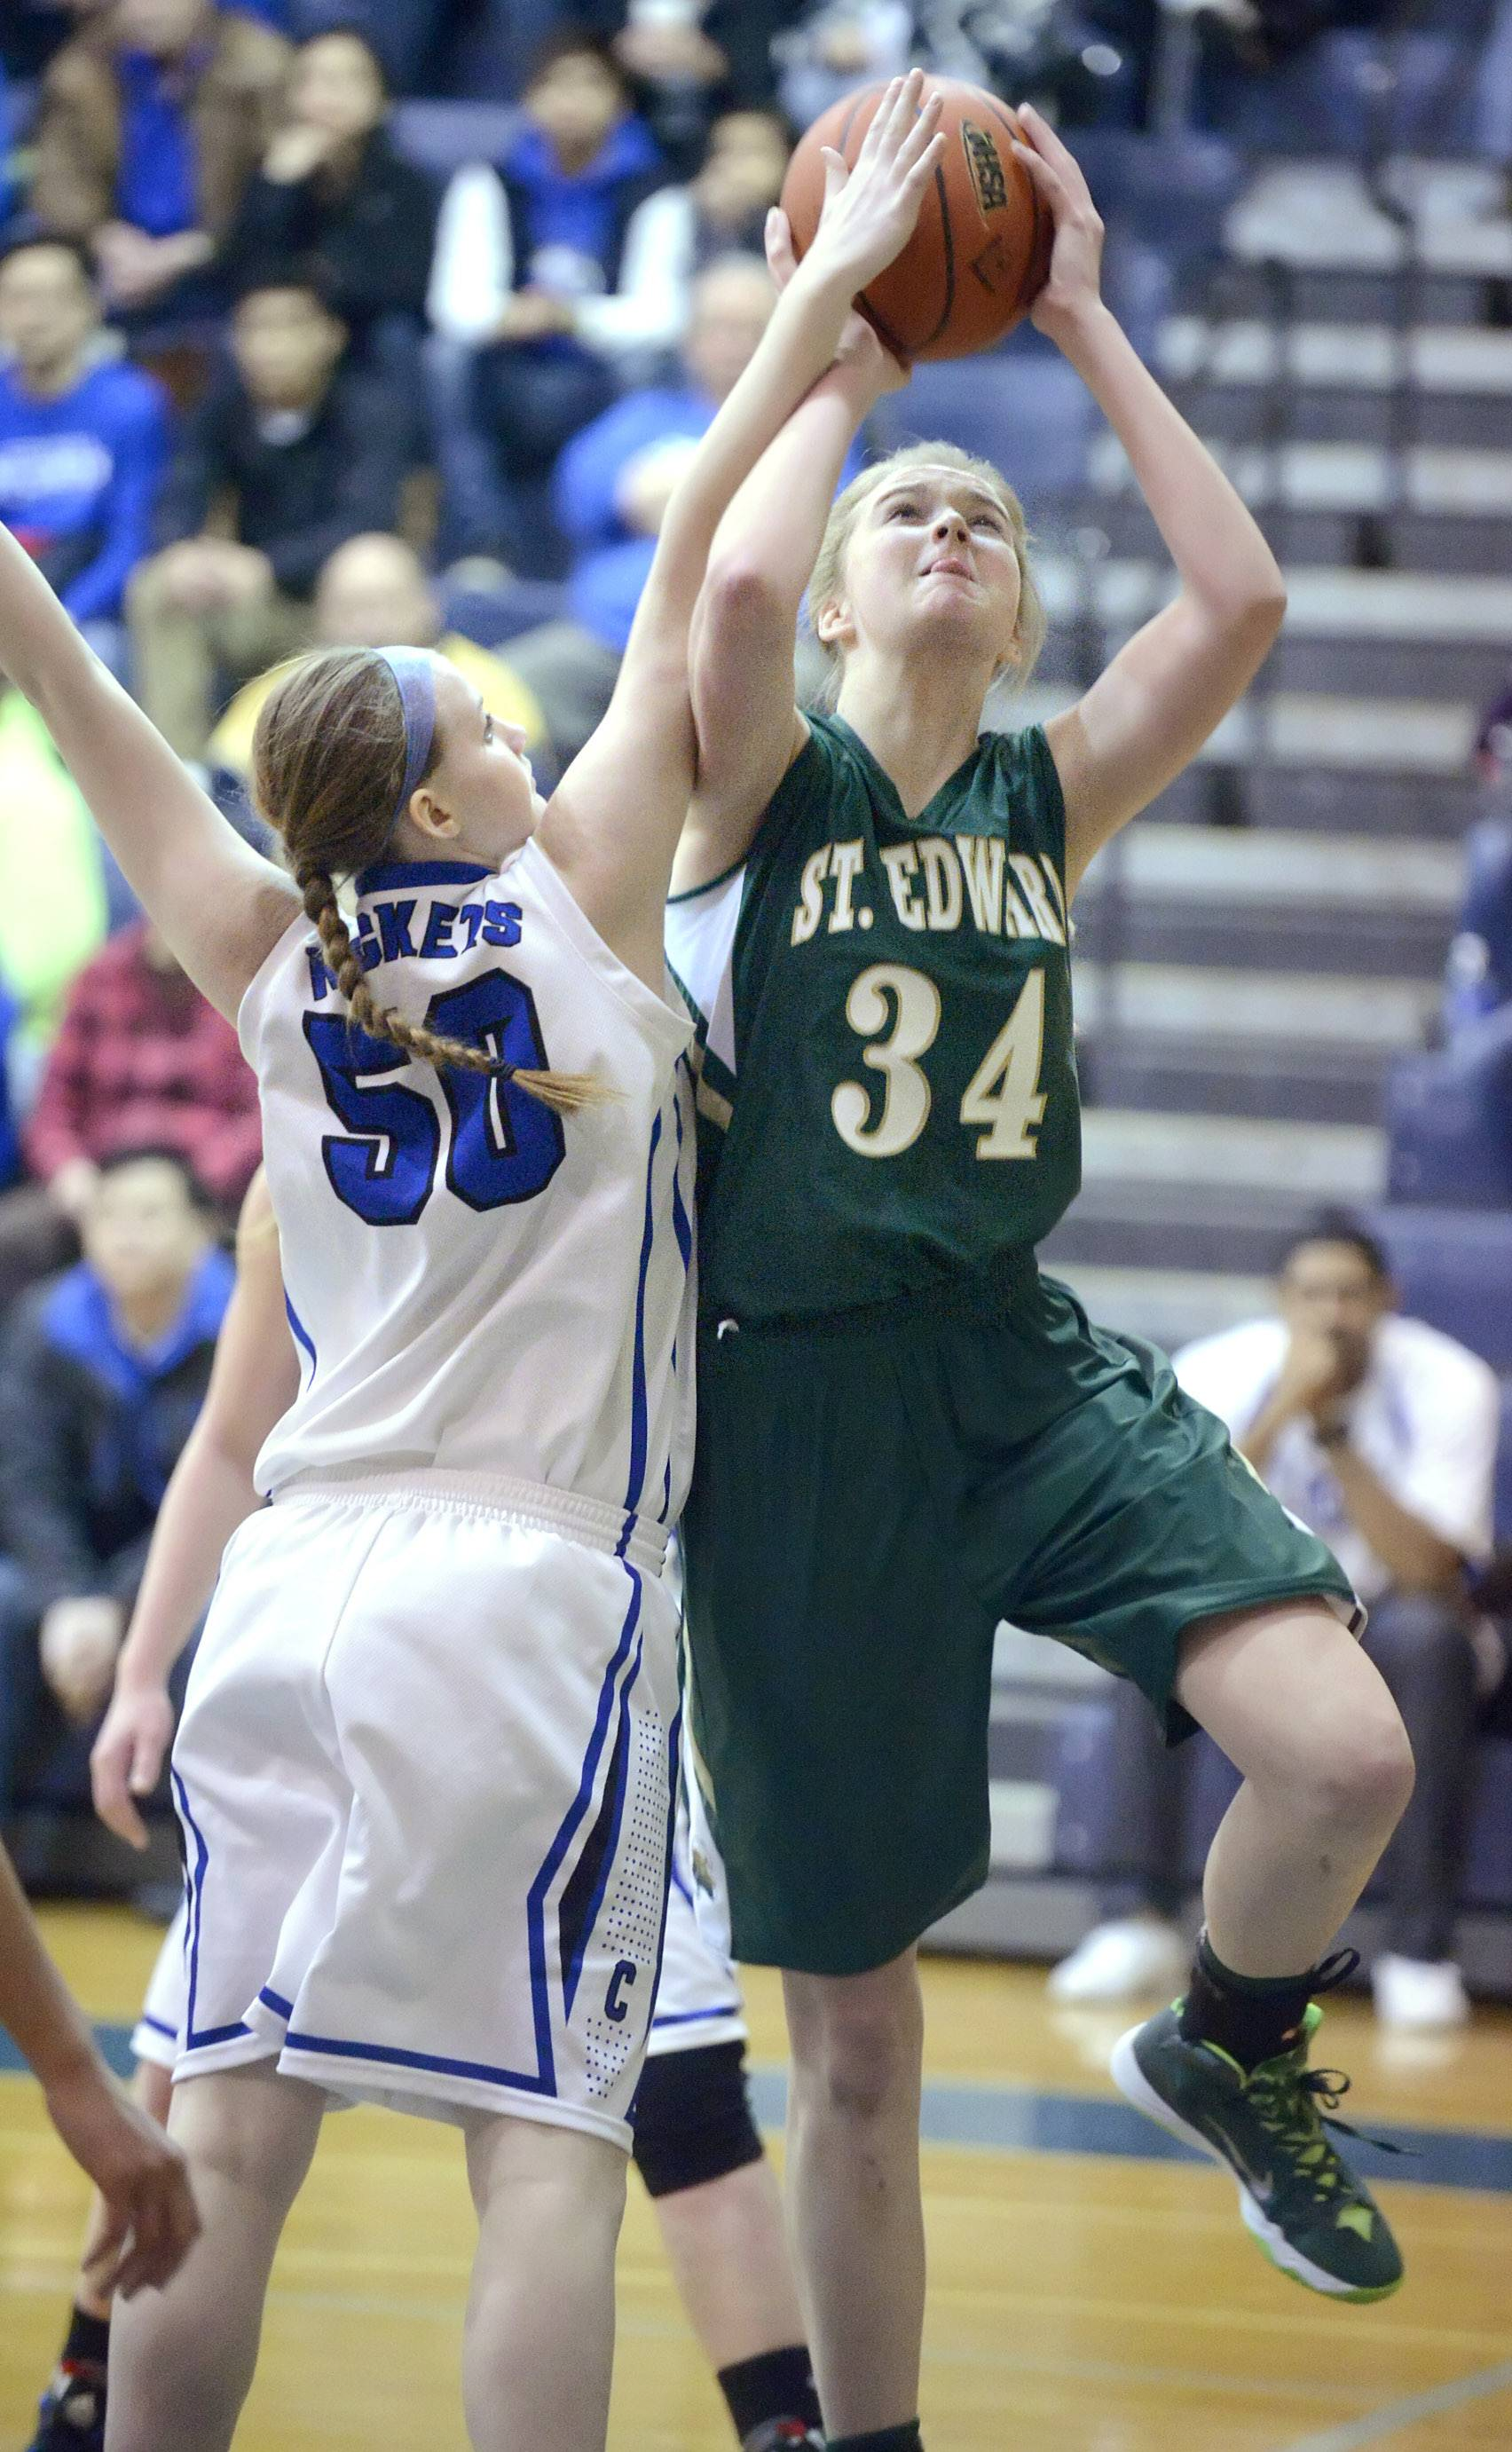 Burlington Central's Rebecca Gerke attempts to block a shot by St. Edward's Cicile Rapp in the first quarter of the Class 3A regional championship game on Saturday, February 22.